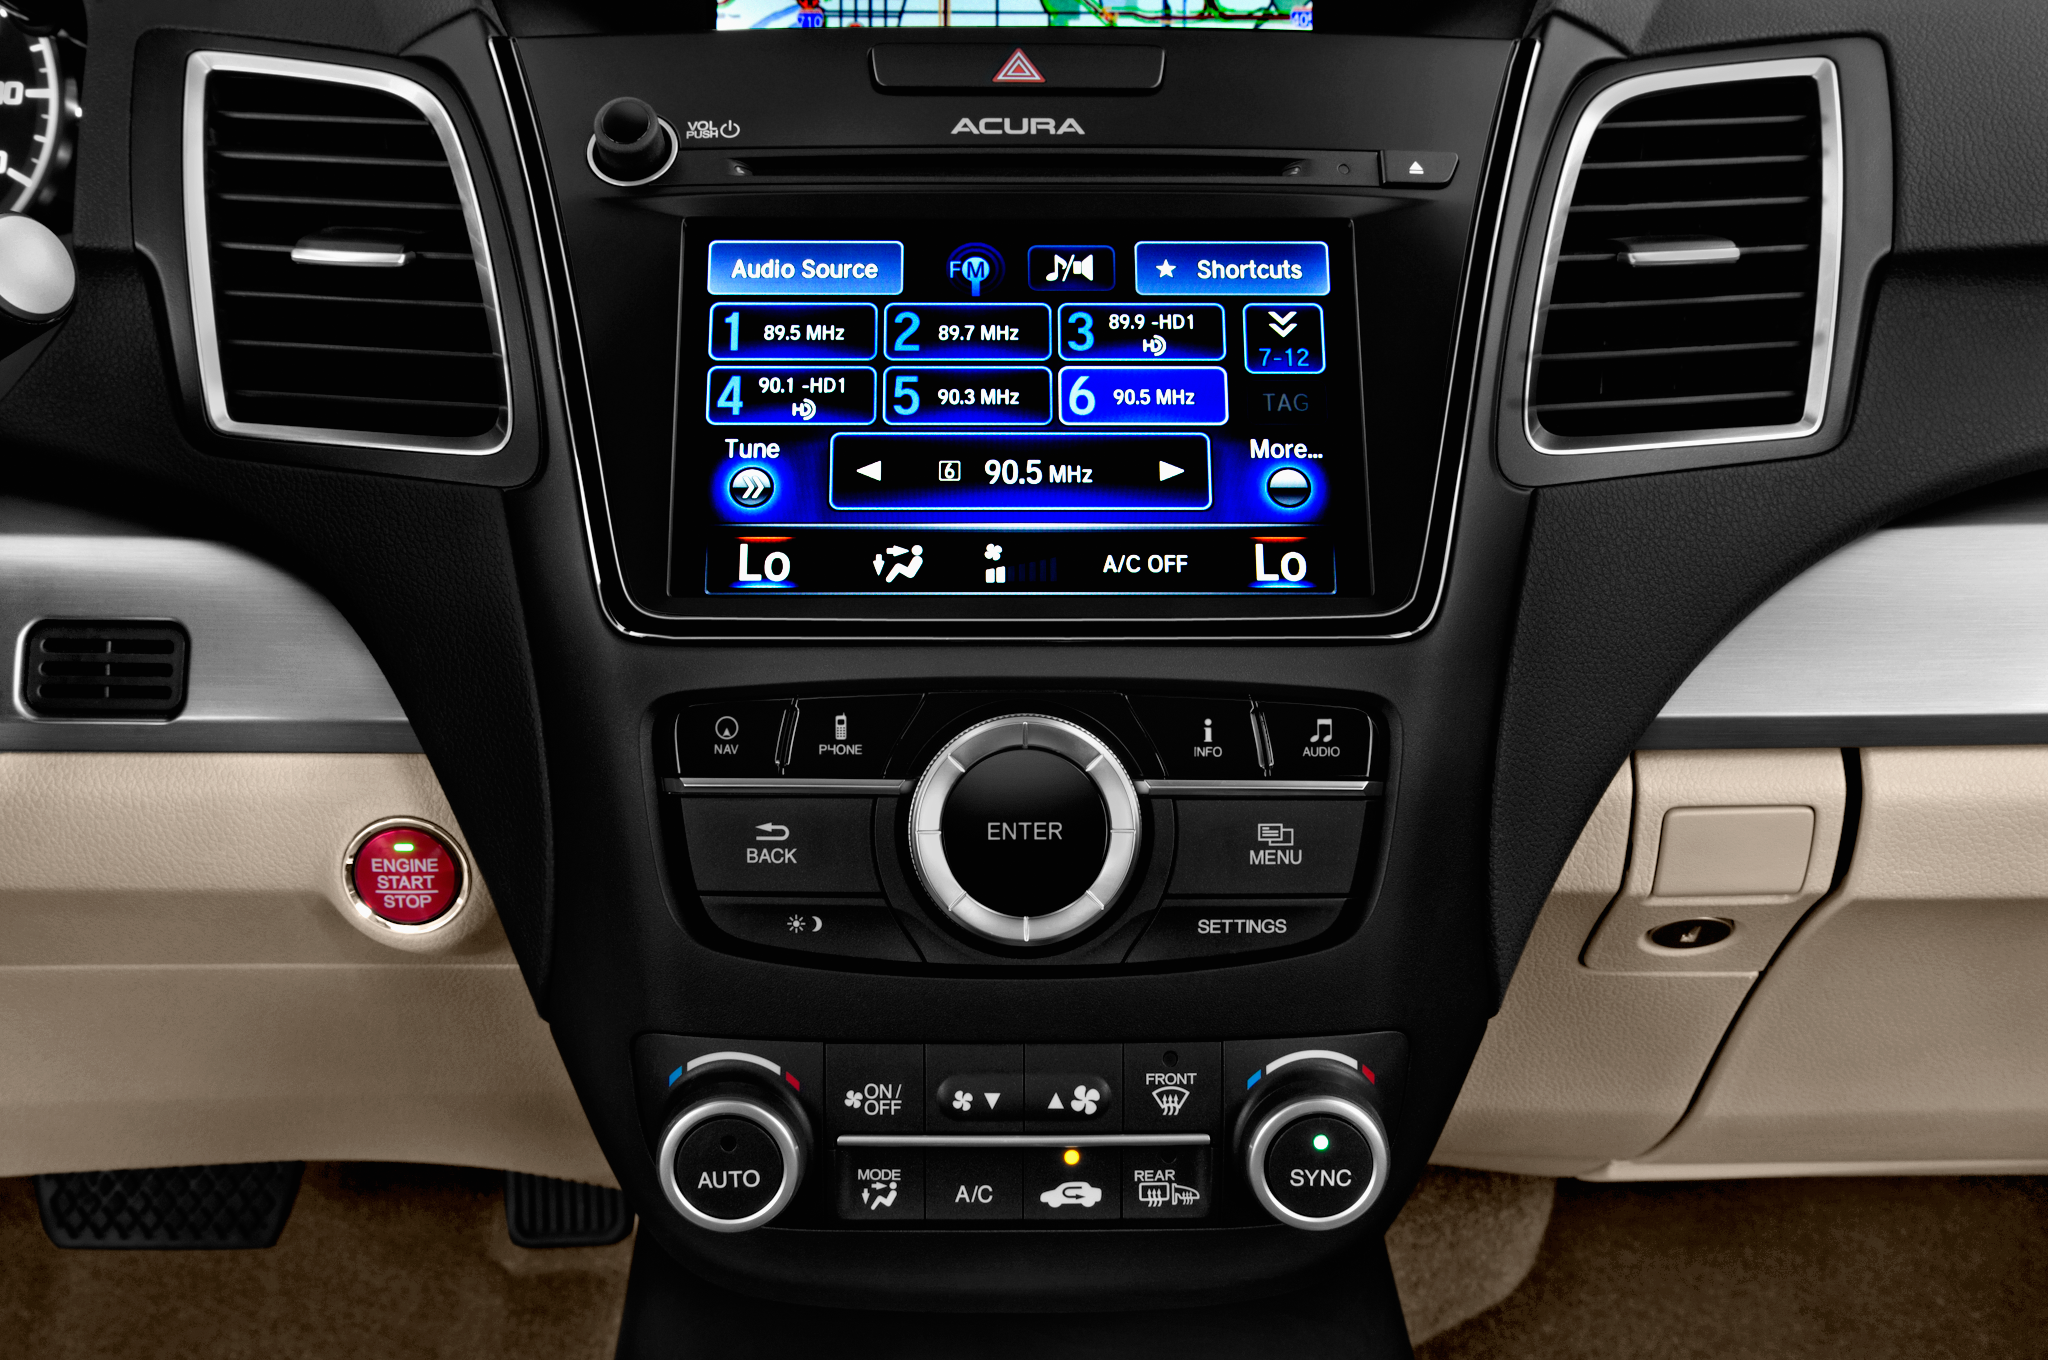 Acuracom Spa Systems Incpm3002 Acura Wiring Diagram